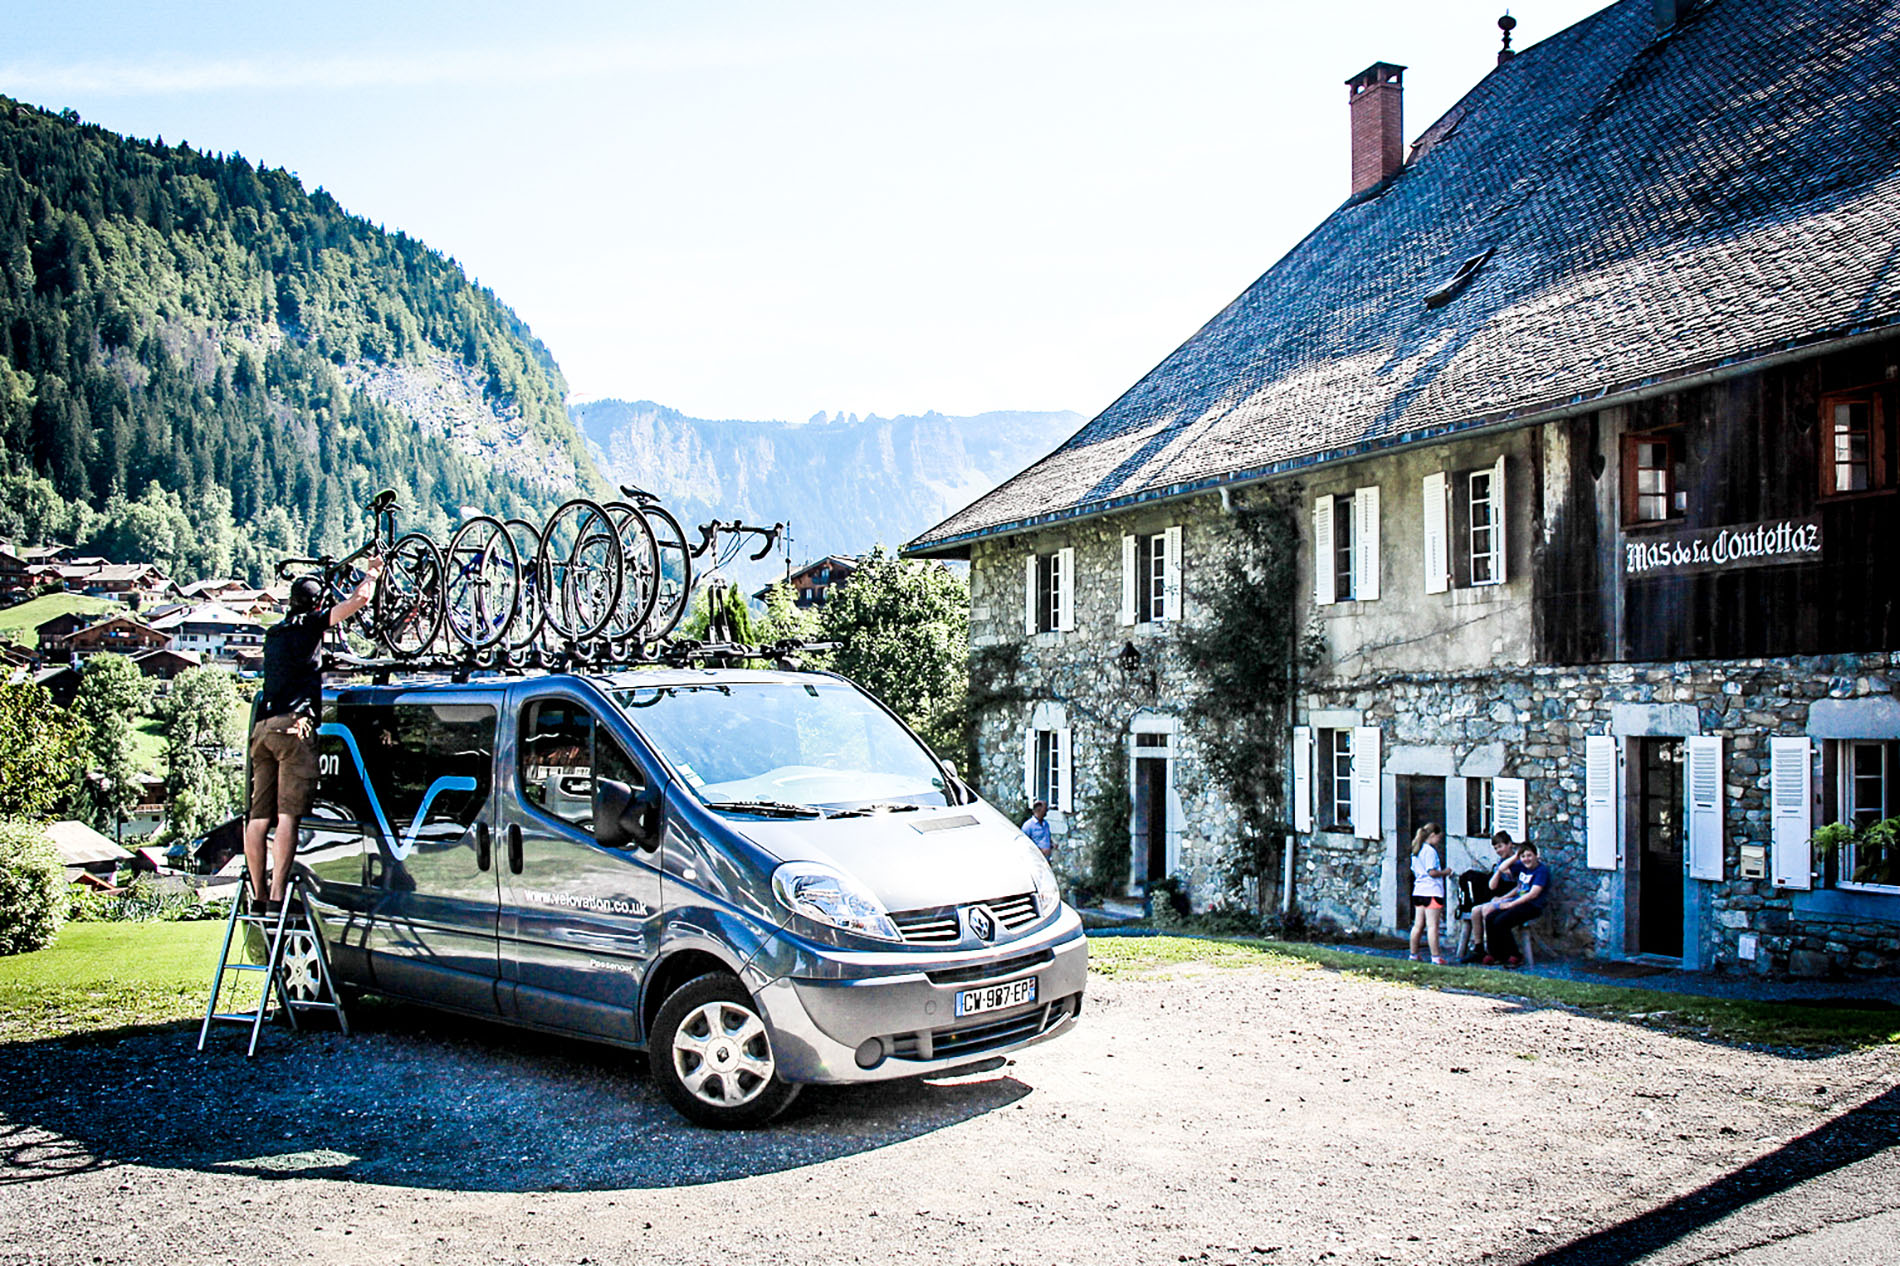 The Velovation support van being unloaded after a supported ride.